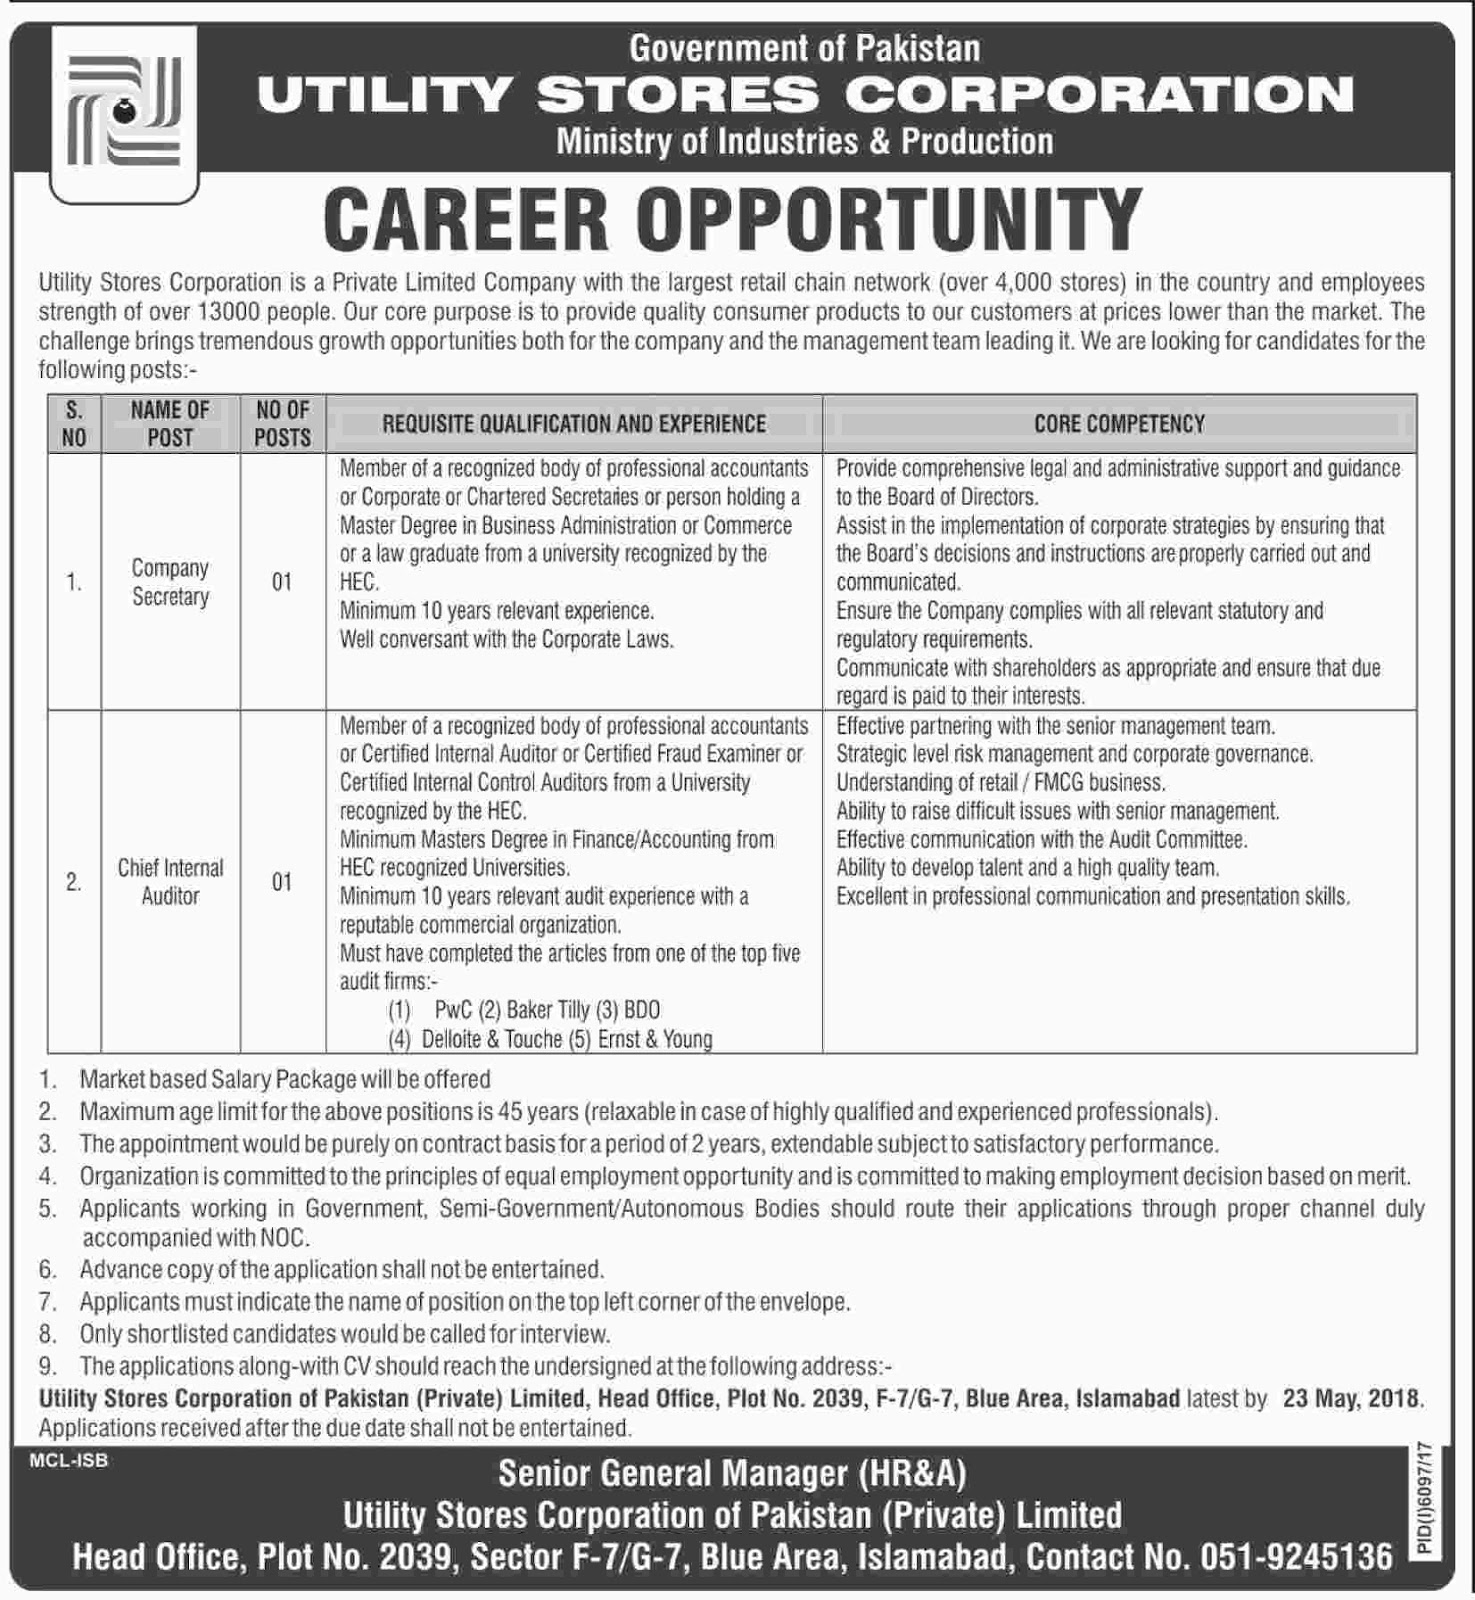 Jobs In Utility Stores Corporation May 2018 Government of Pakistan